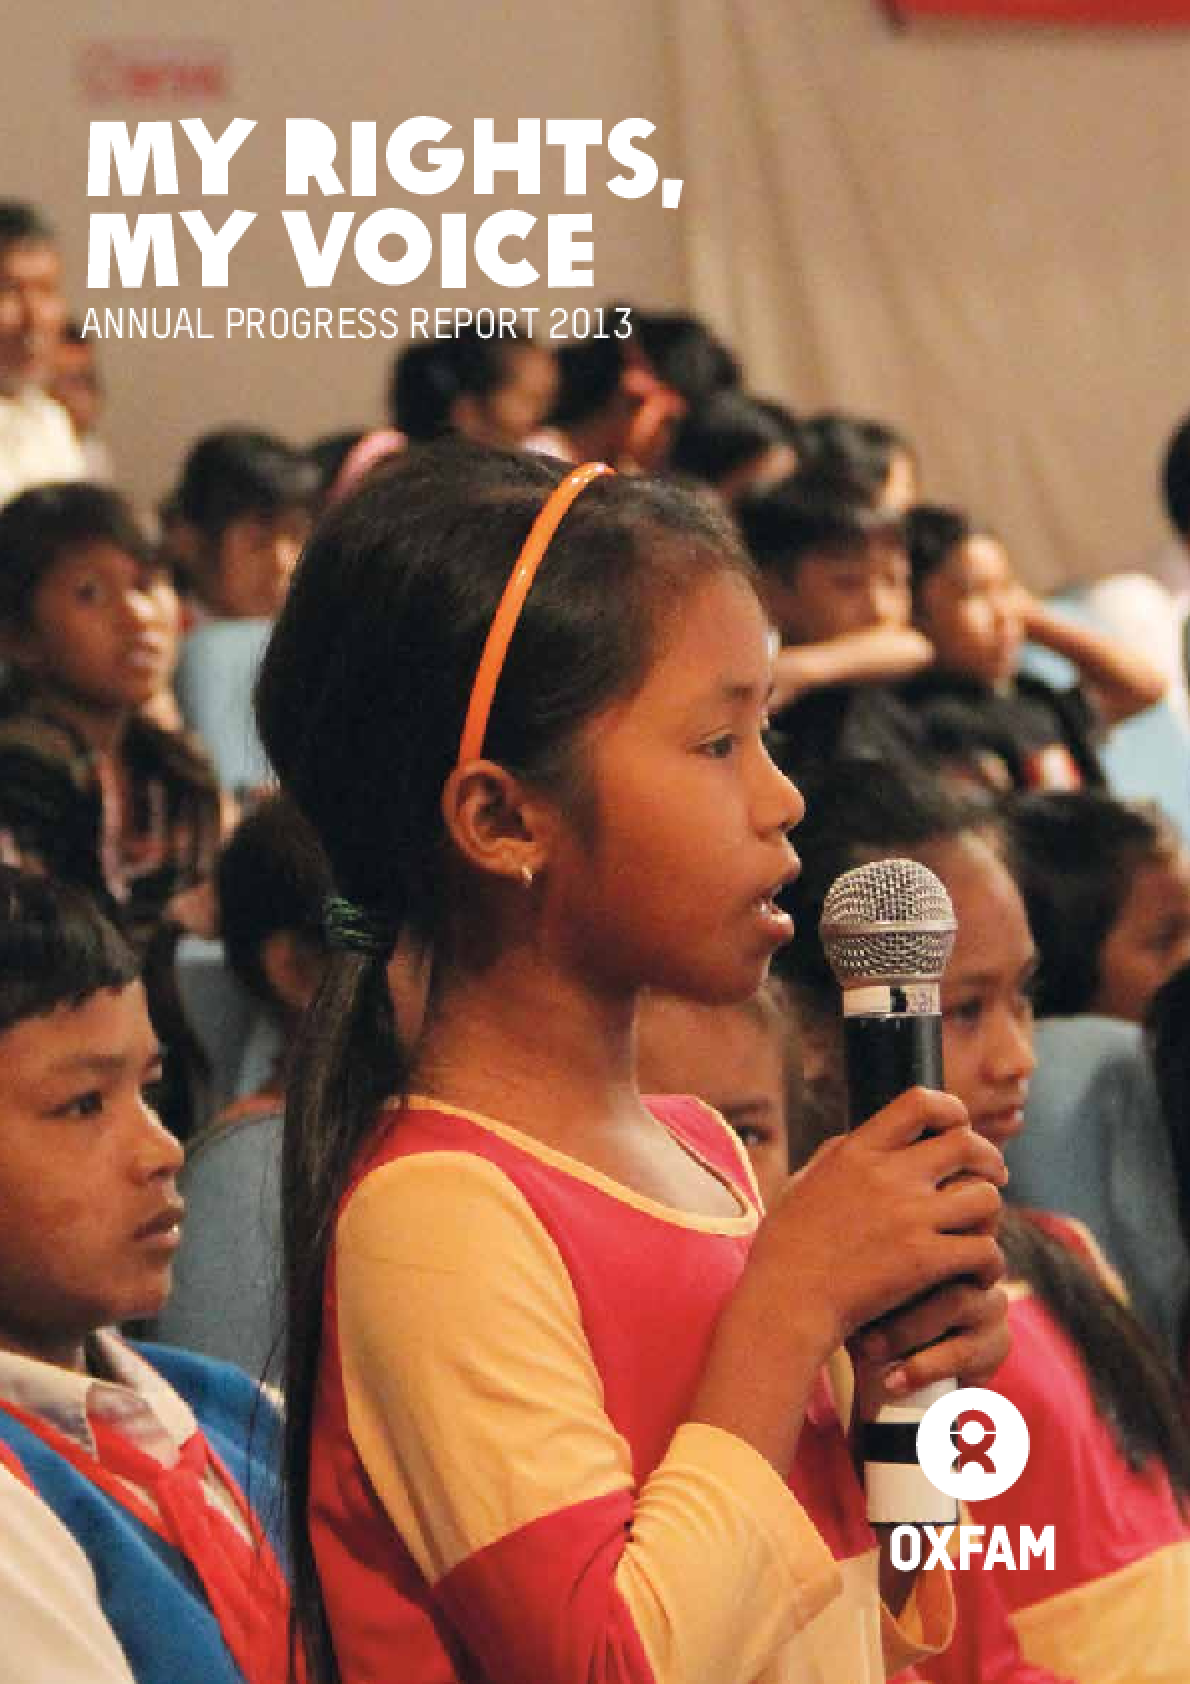 My Rights, My Voice Annual Progress Report 2013